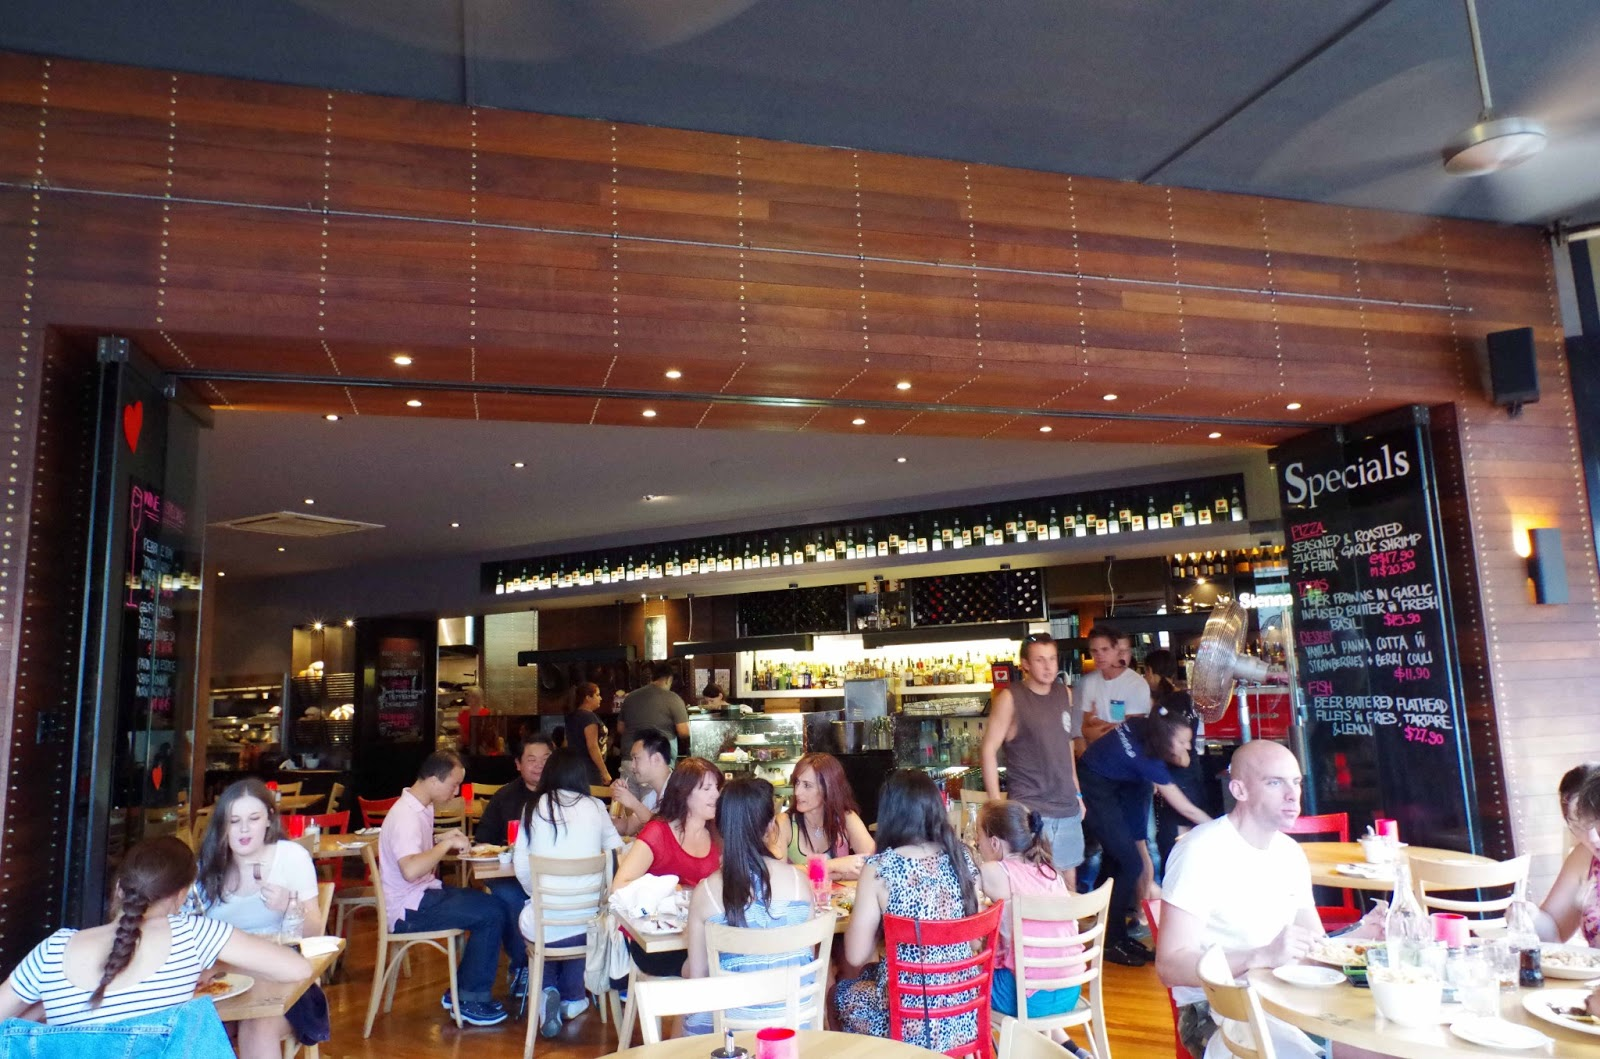 Cotta Cafe Melbourn : Cafe sienna review 402 chapel st prahan howies melbourne